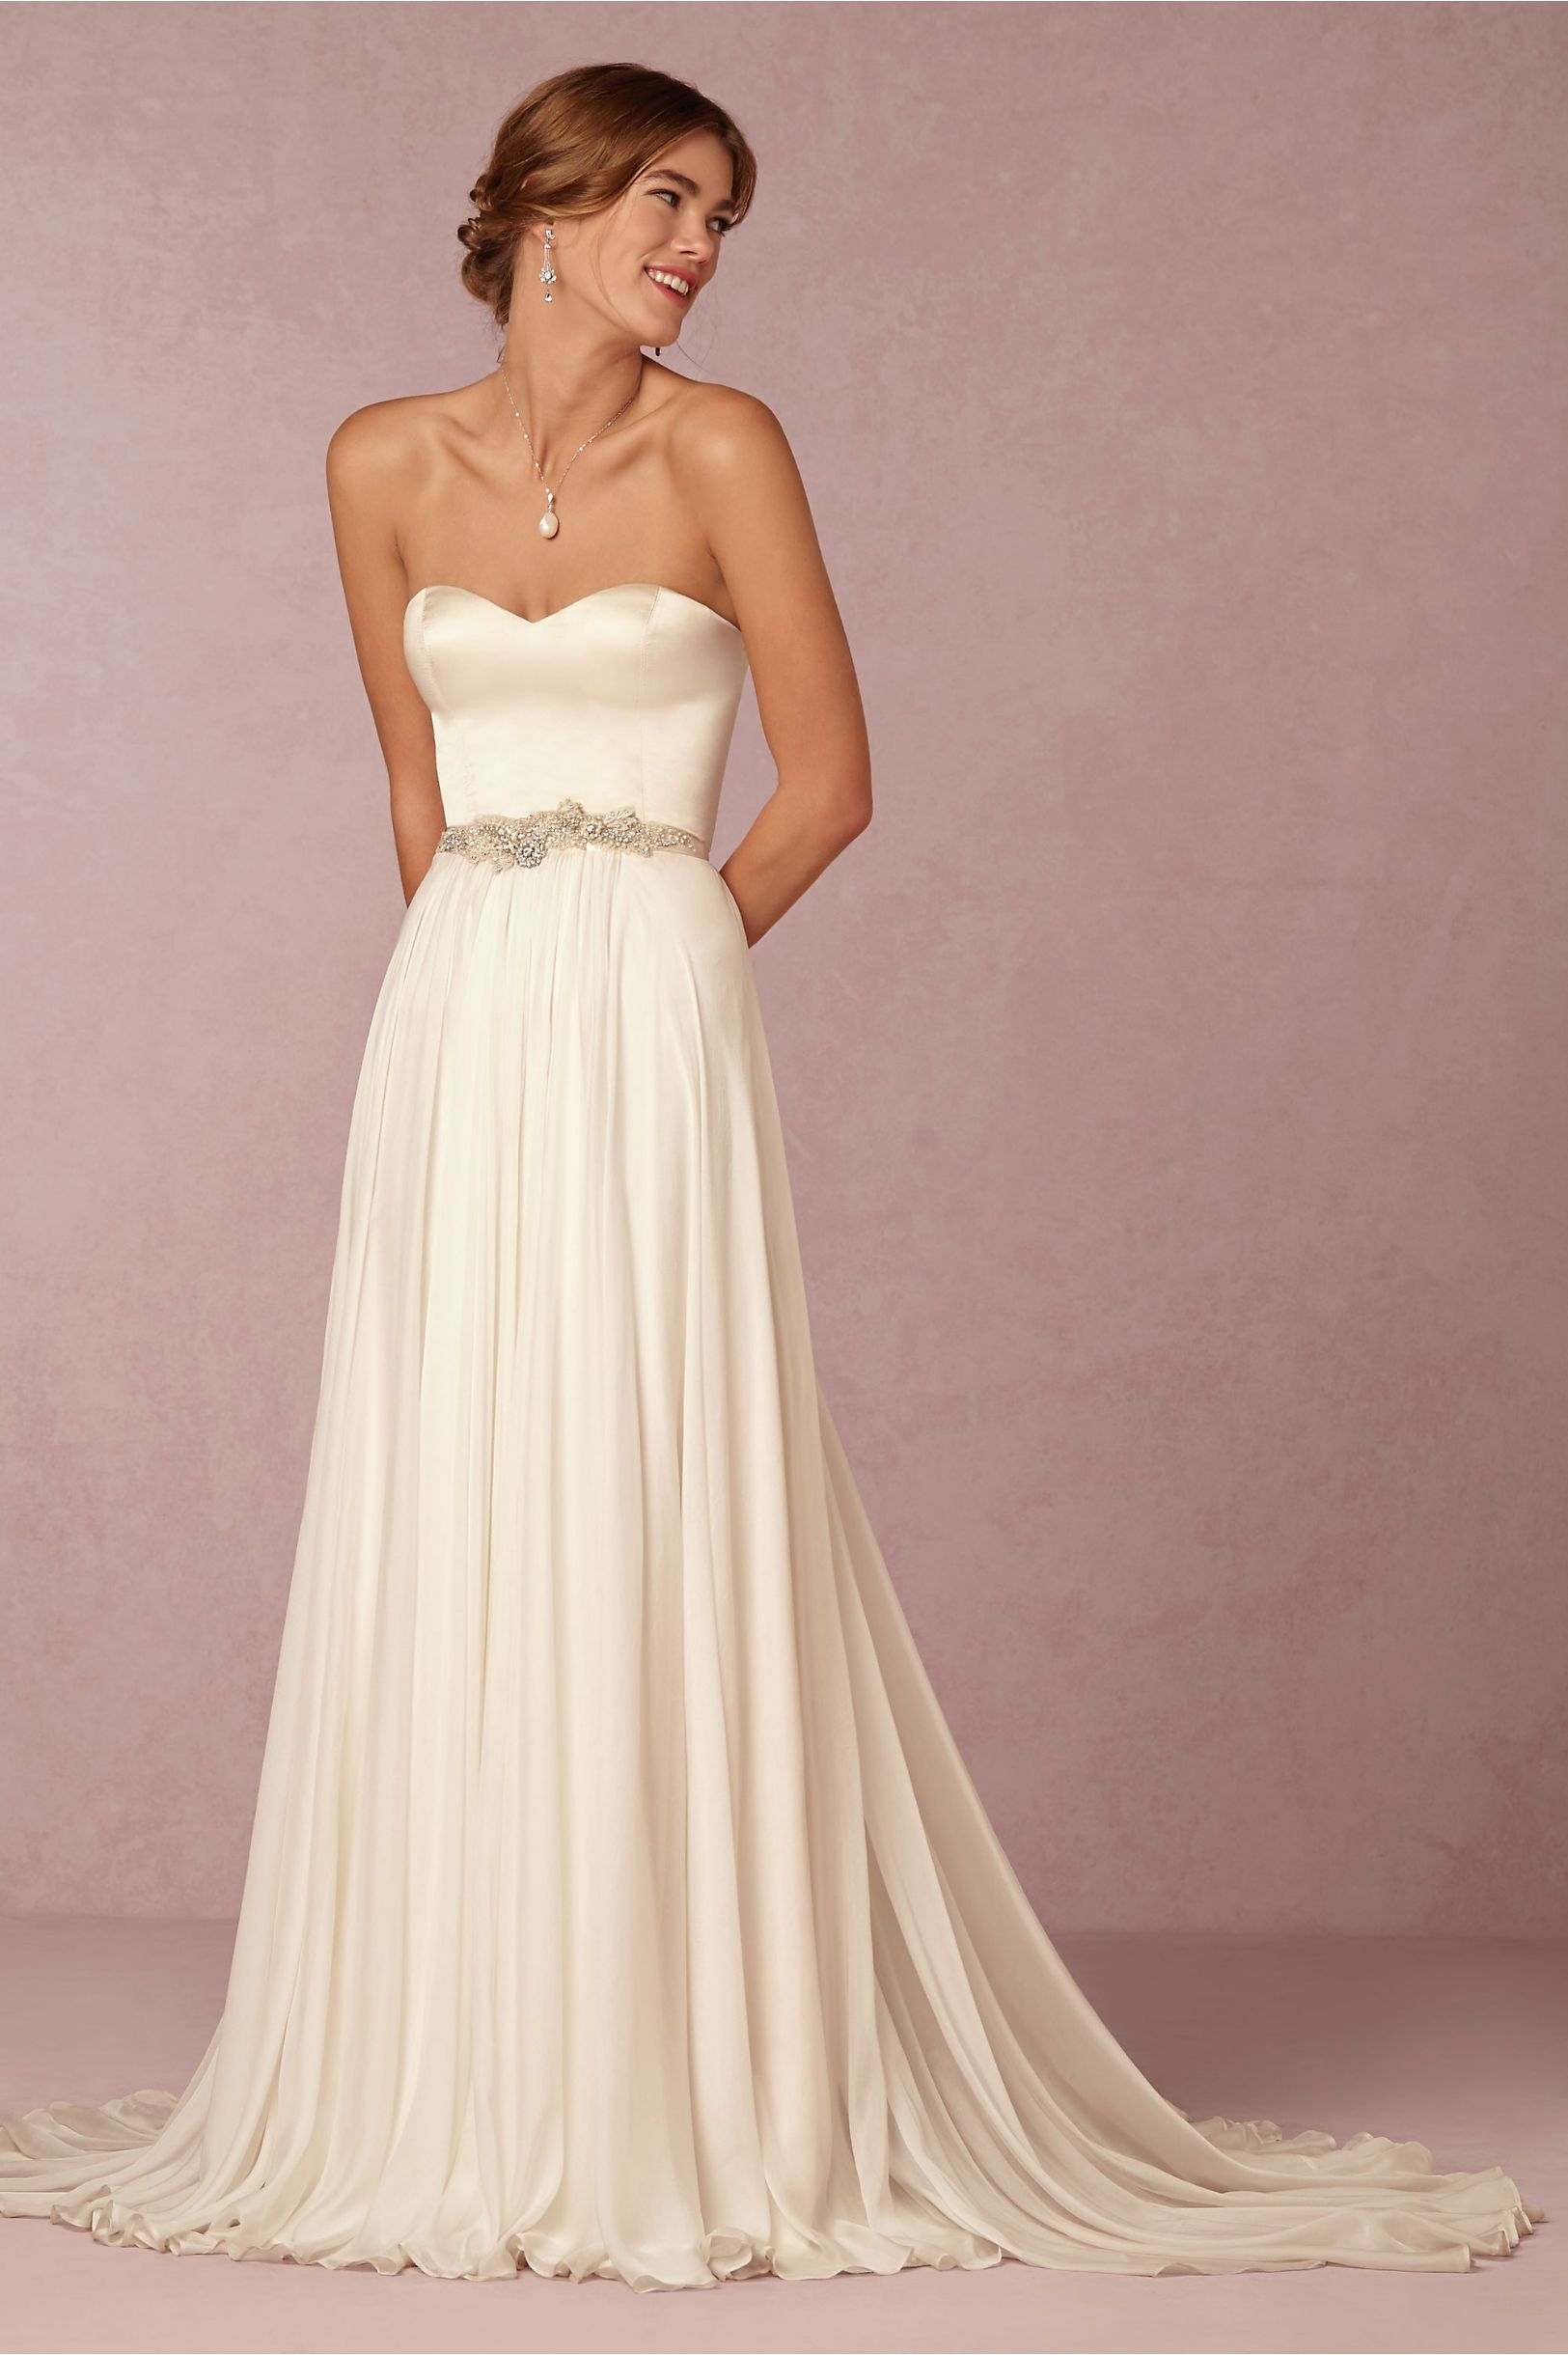 Darla Camisole and Delia Maxi Skirt in Bride Wedding Dresses at ...